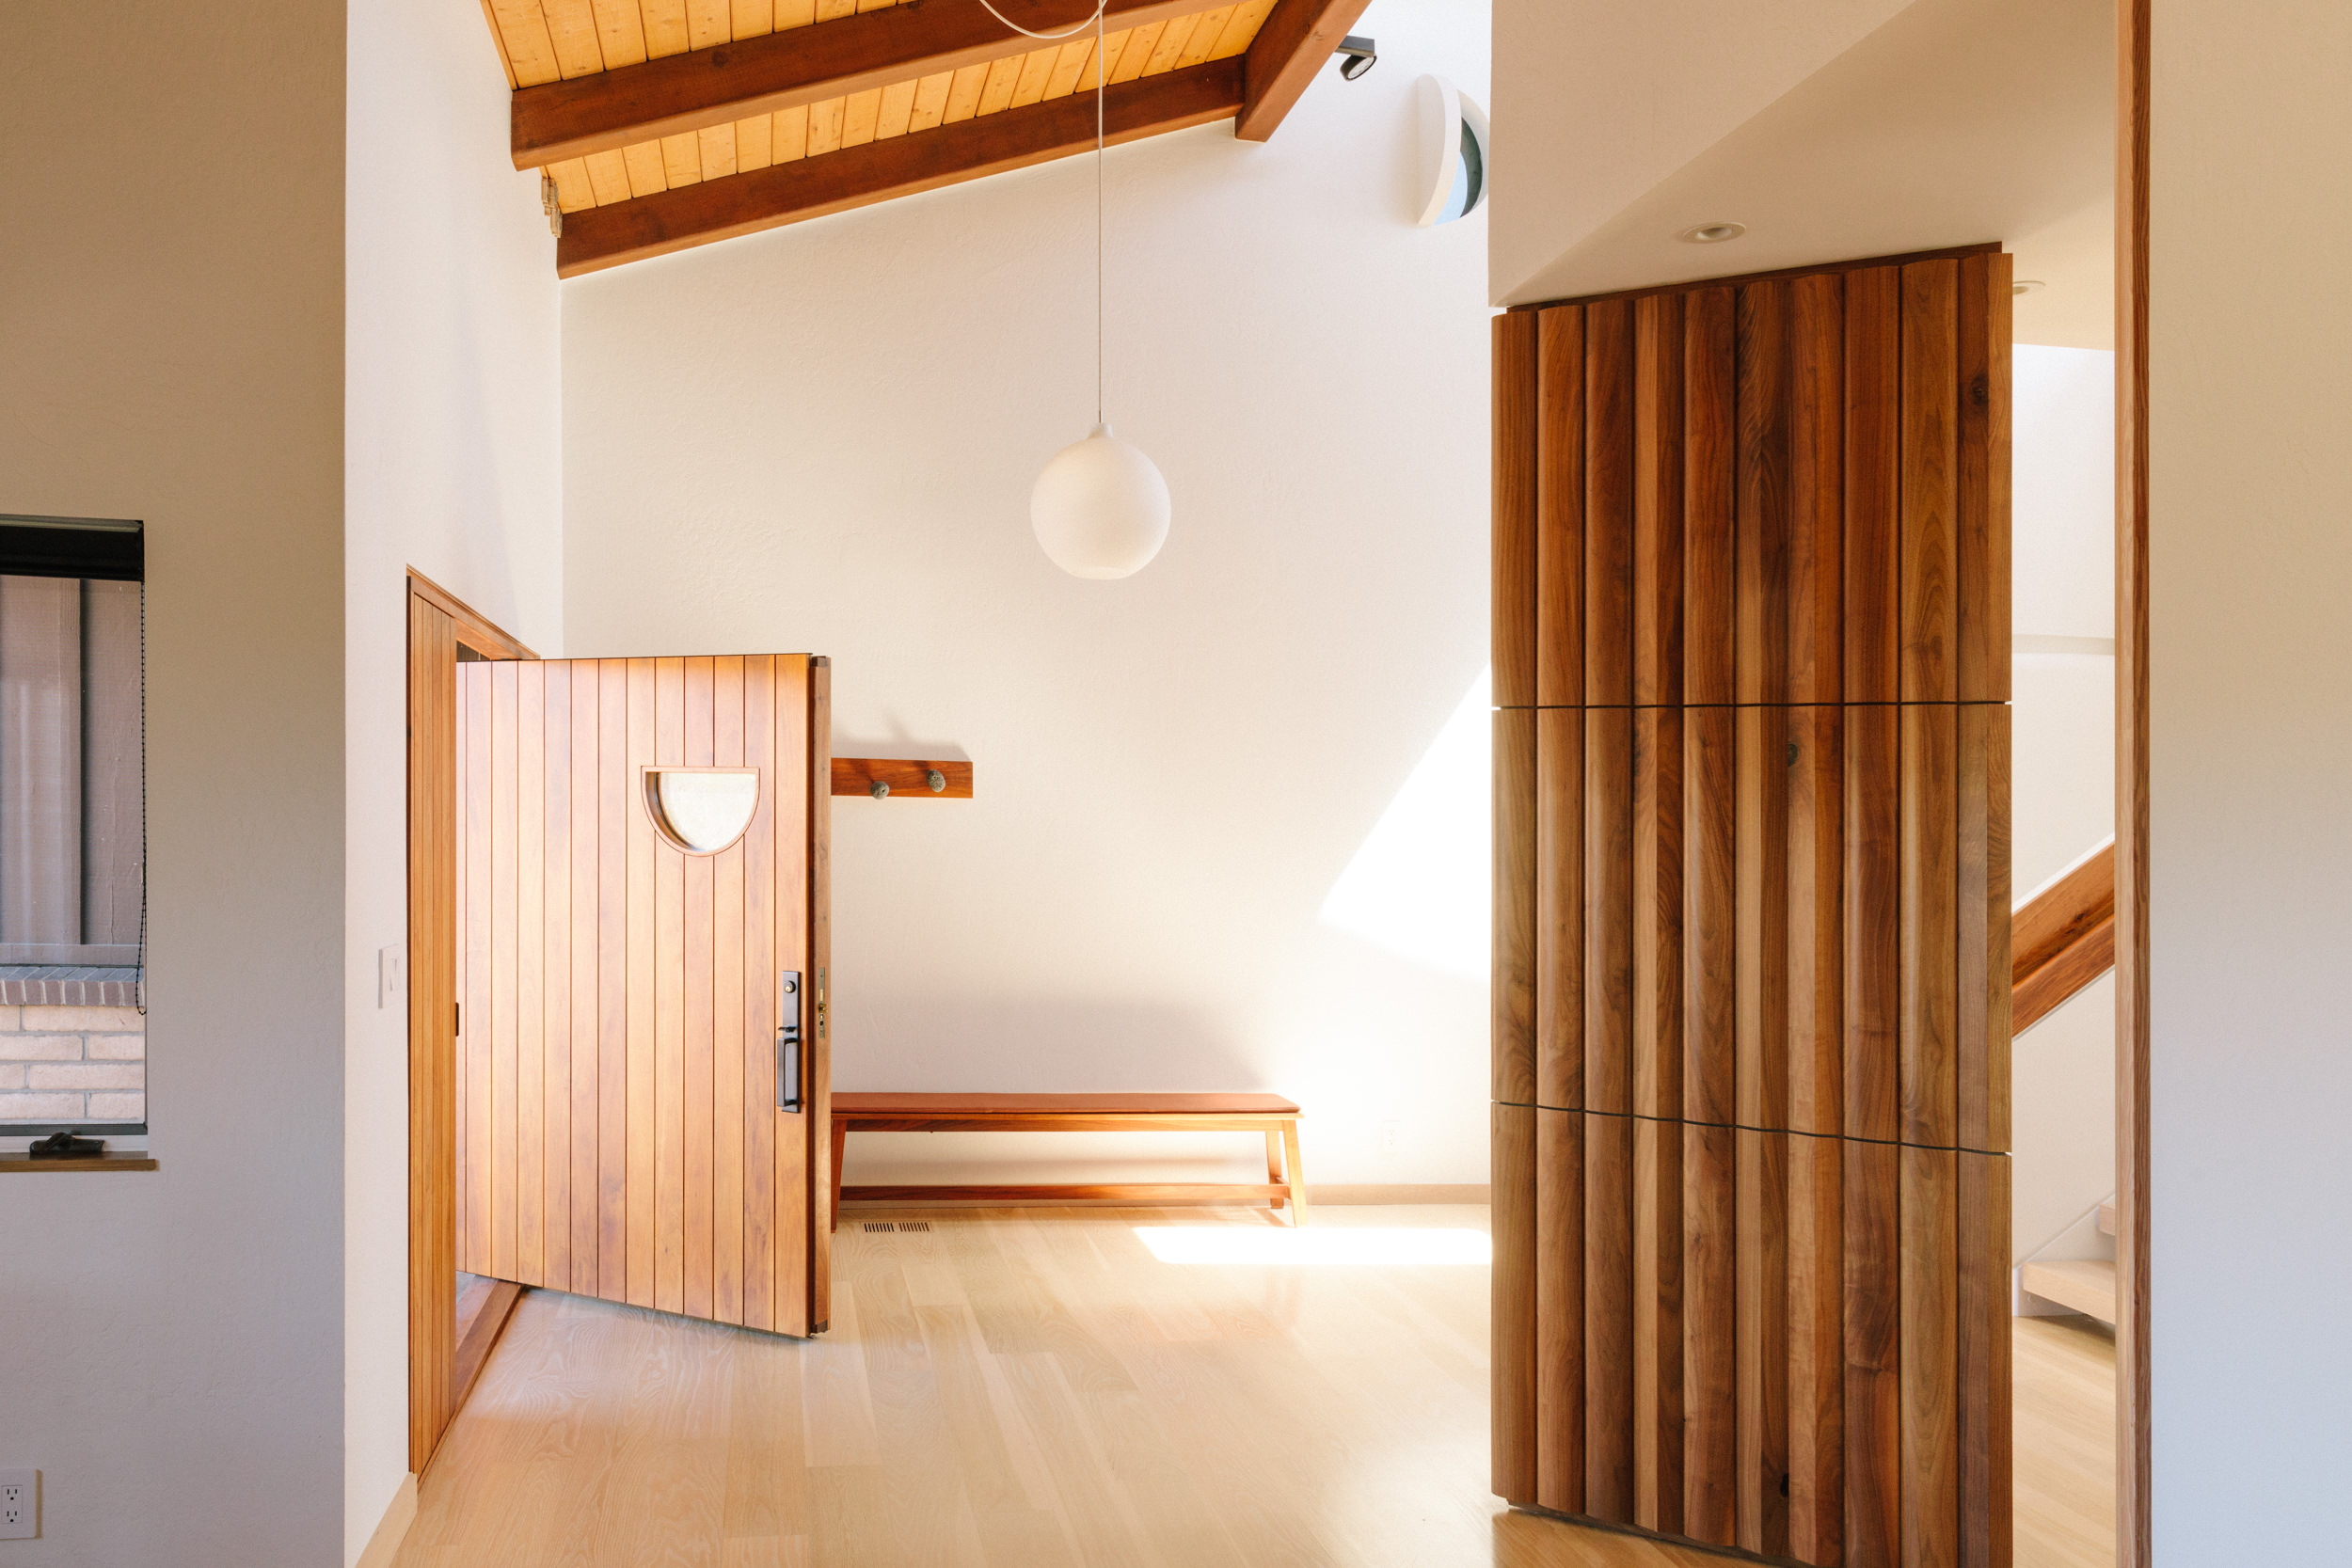 CURBED: SAN MIGUEL HOME TOUR